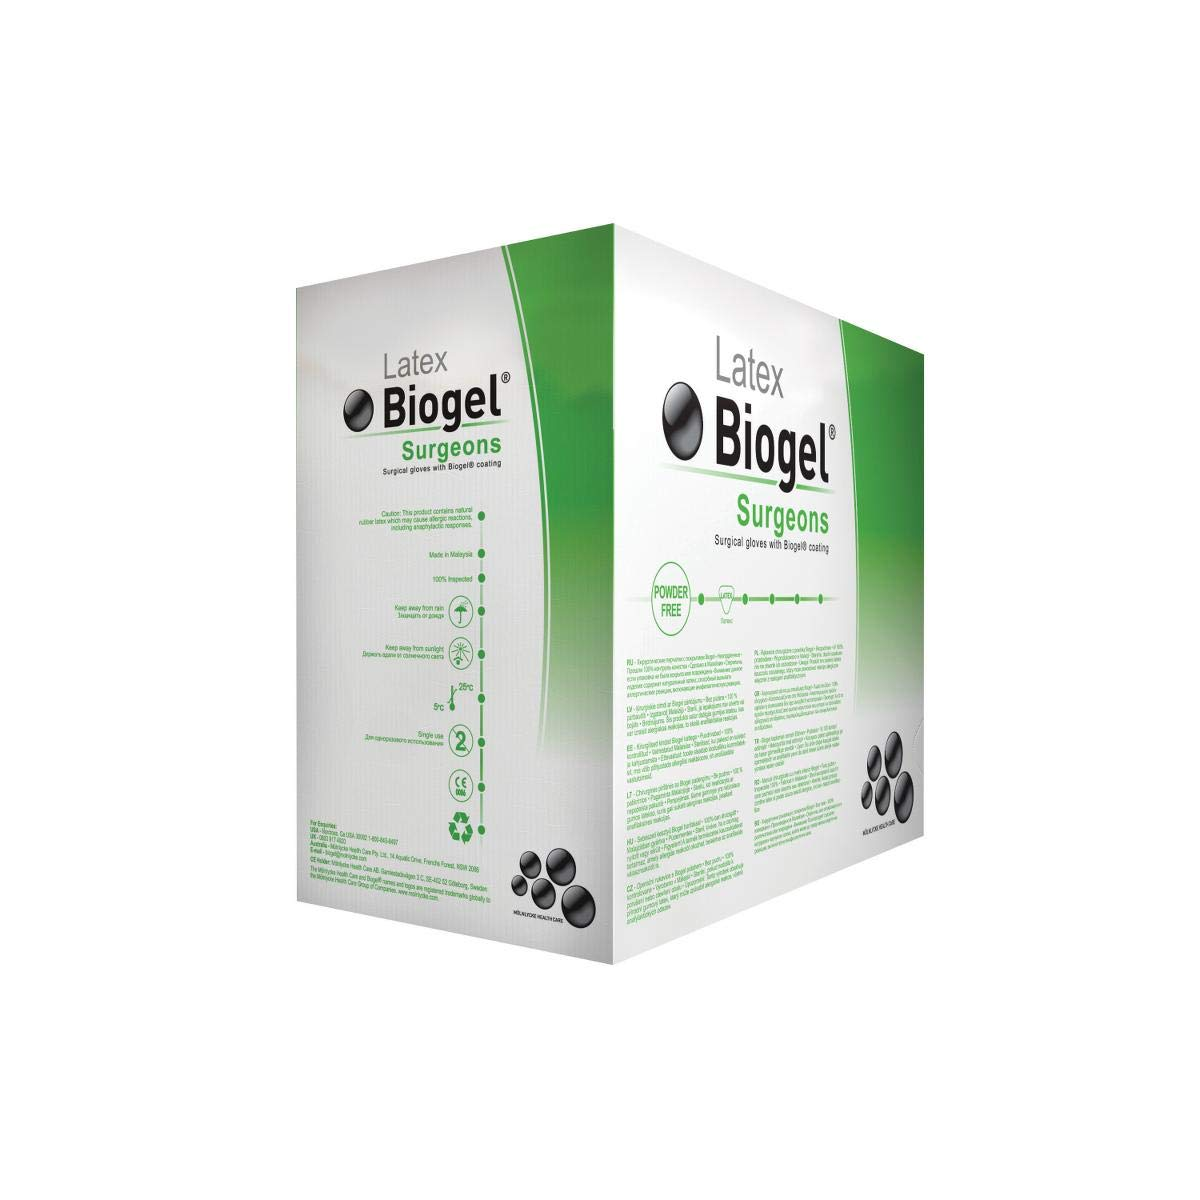 Biogel Surgeons Gloves 6 1/2 50/Bx, Molnlycke Healthcare (Regent) (30465) by Direct Inc (Image #2)